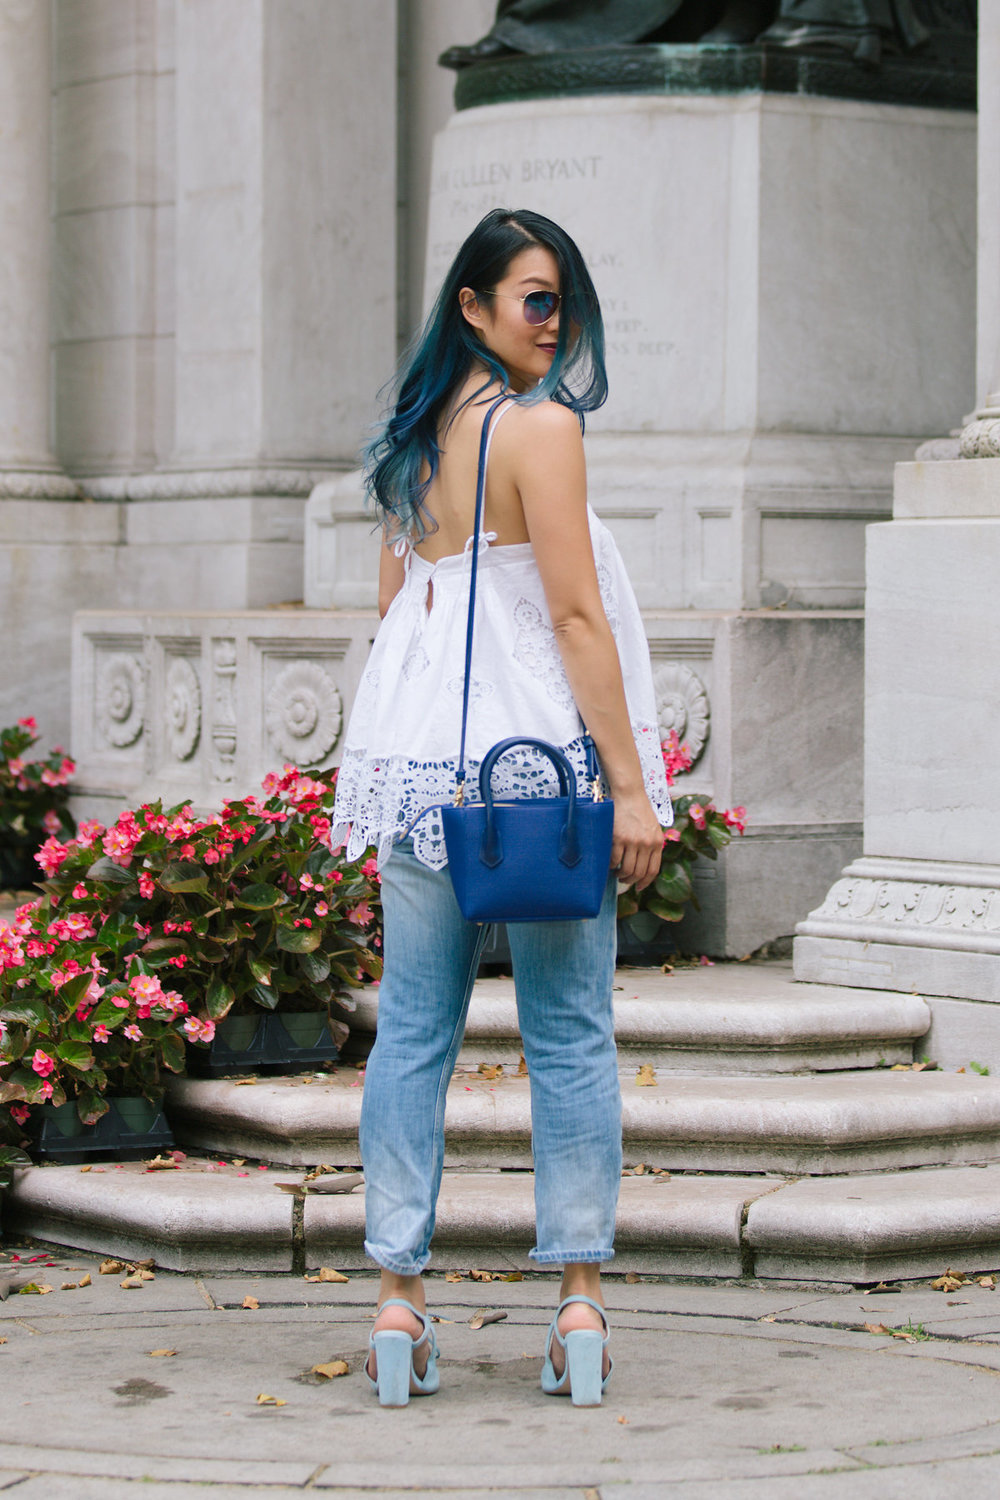 bluehair_lacetop8.jpg